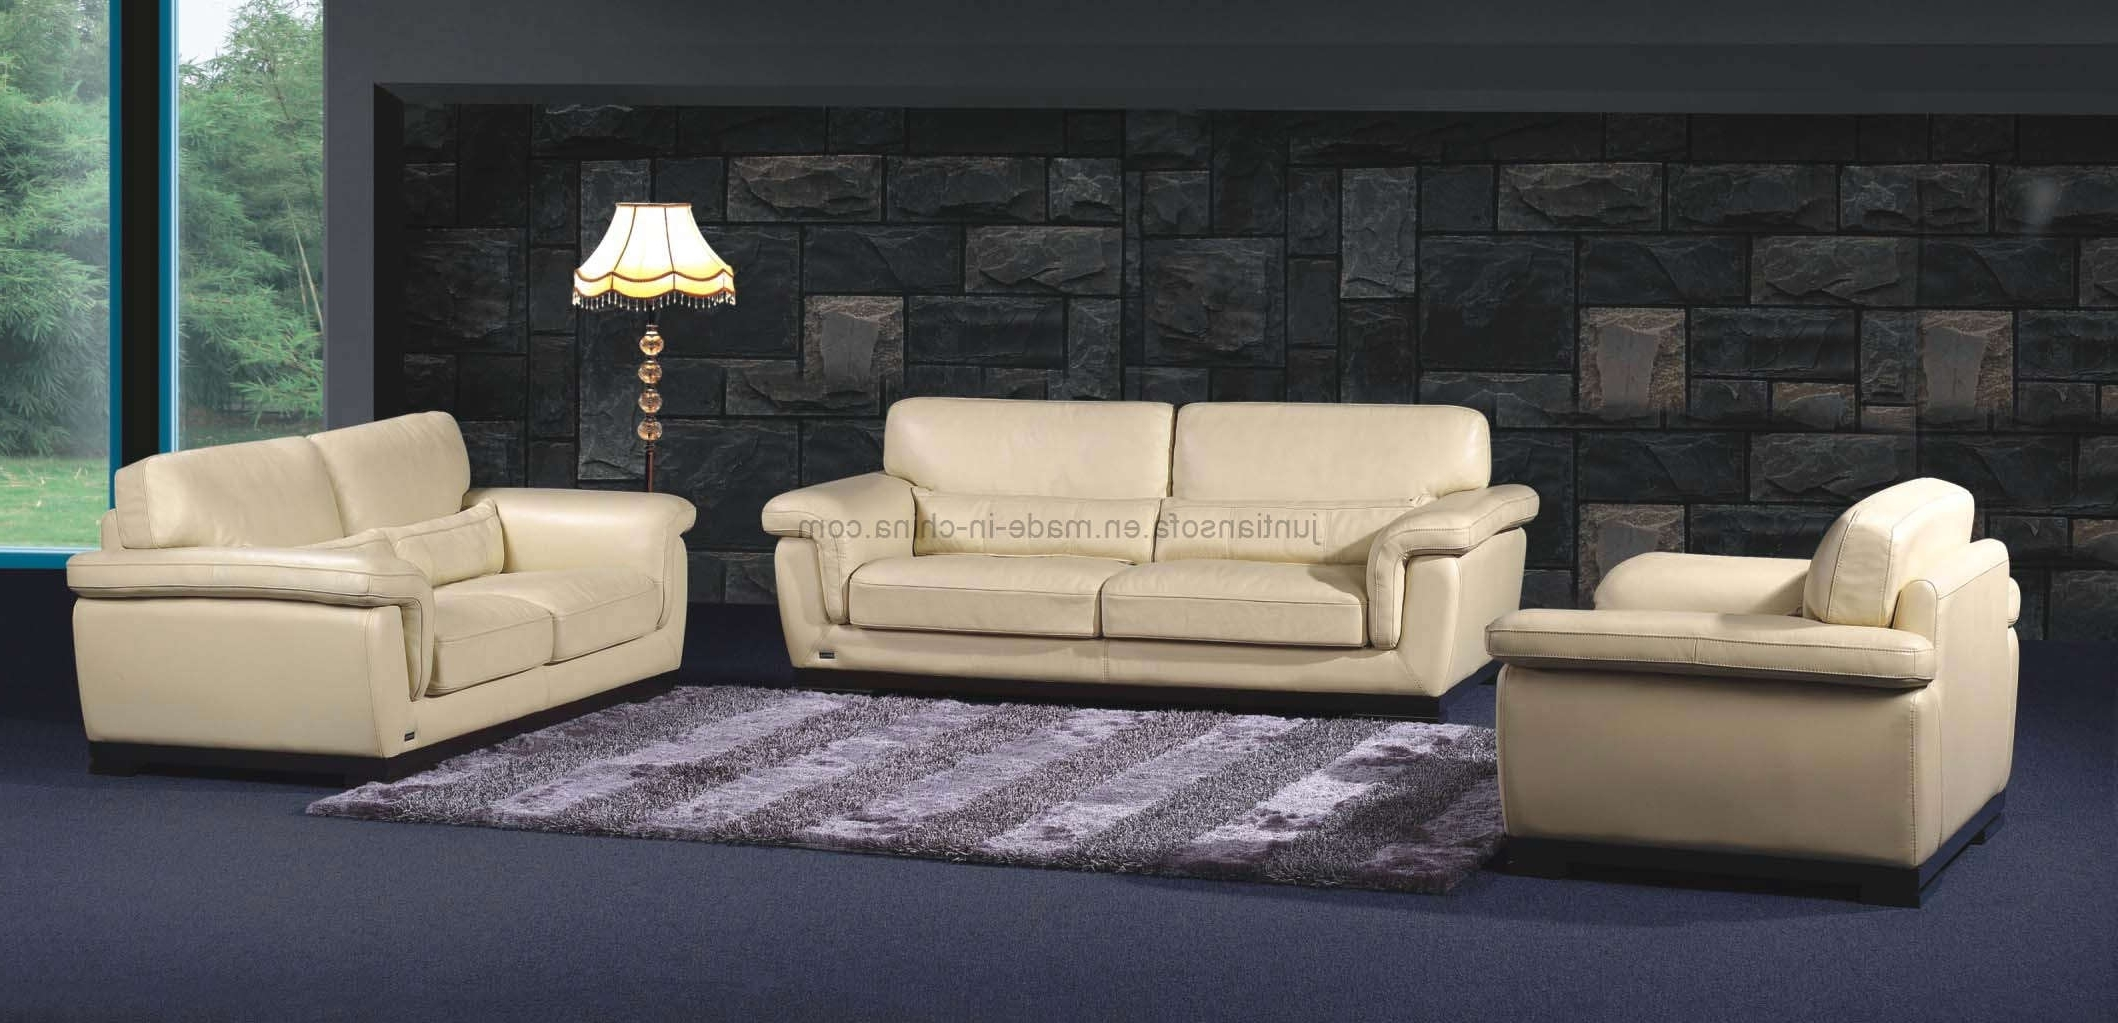 Recent Quality Sectional Sofas For Lovely High Quality Sectional Sofa 30 For Sofa Room Ideas With (View 4 of 20)